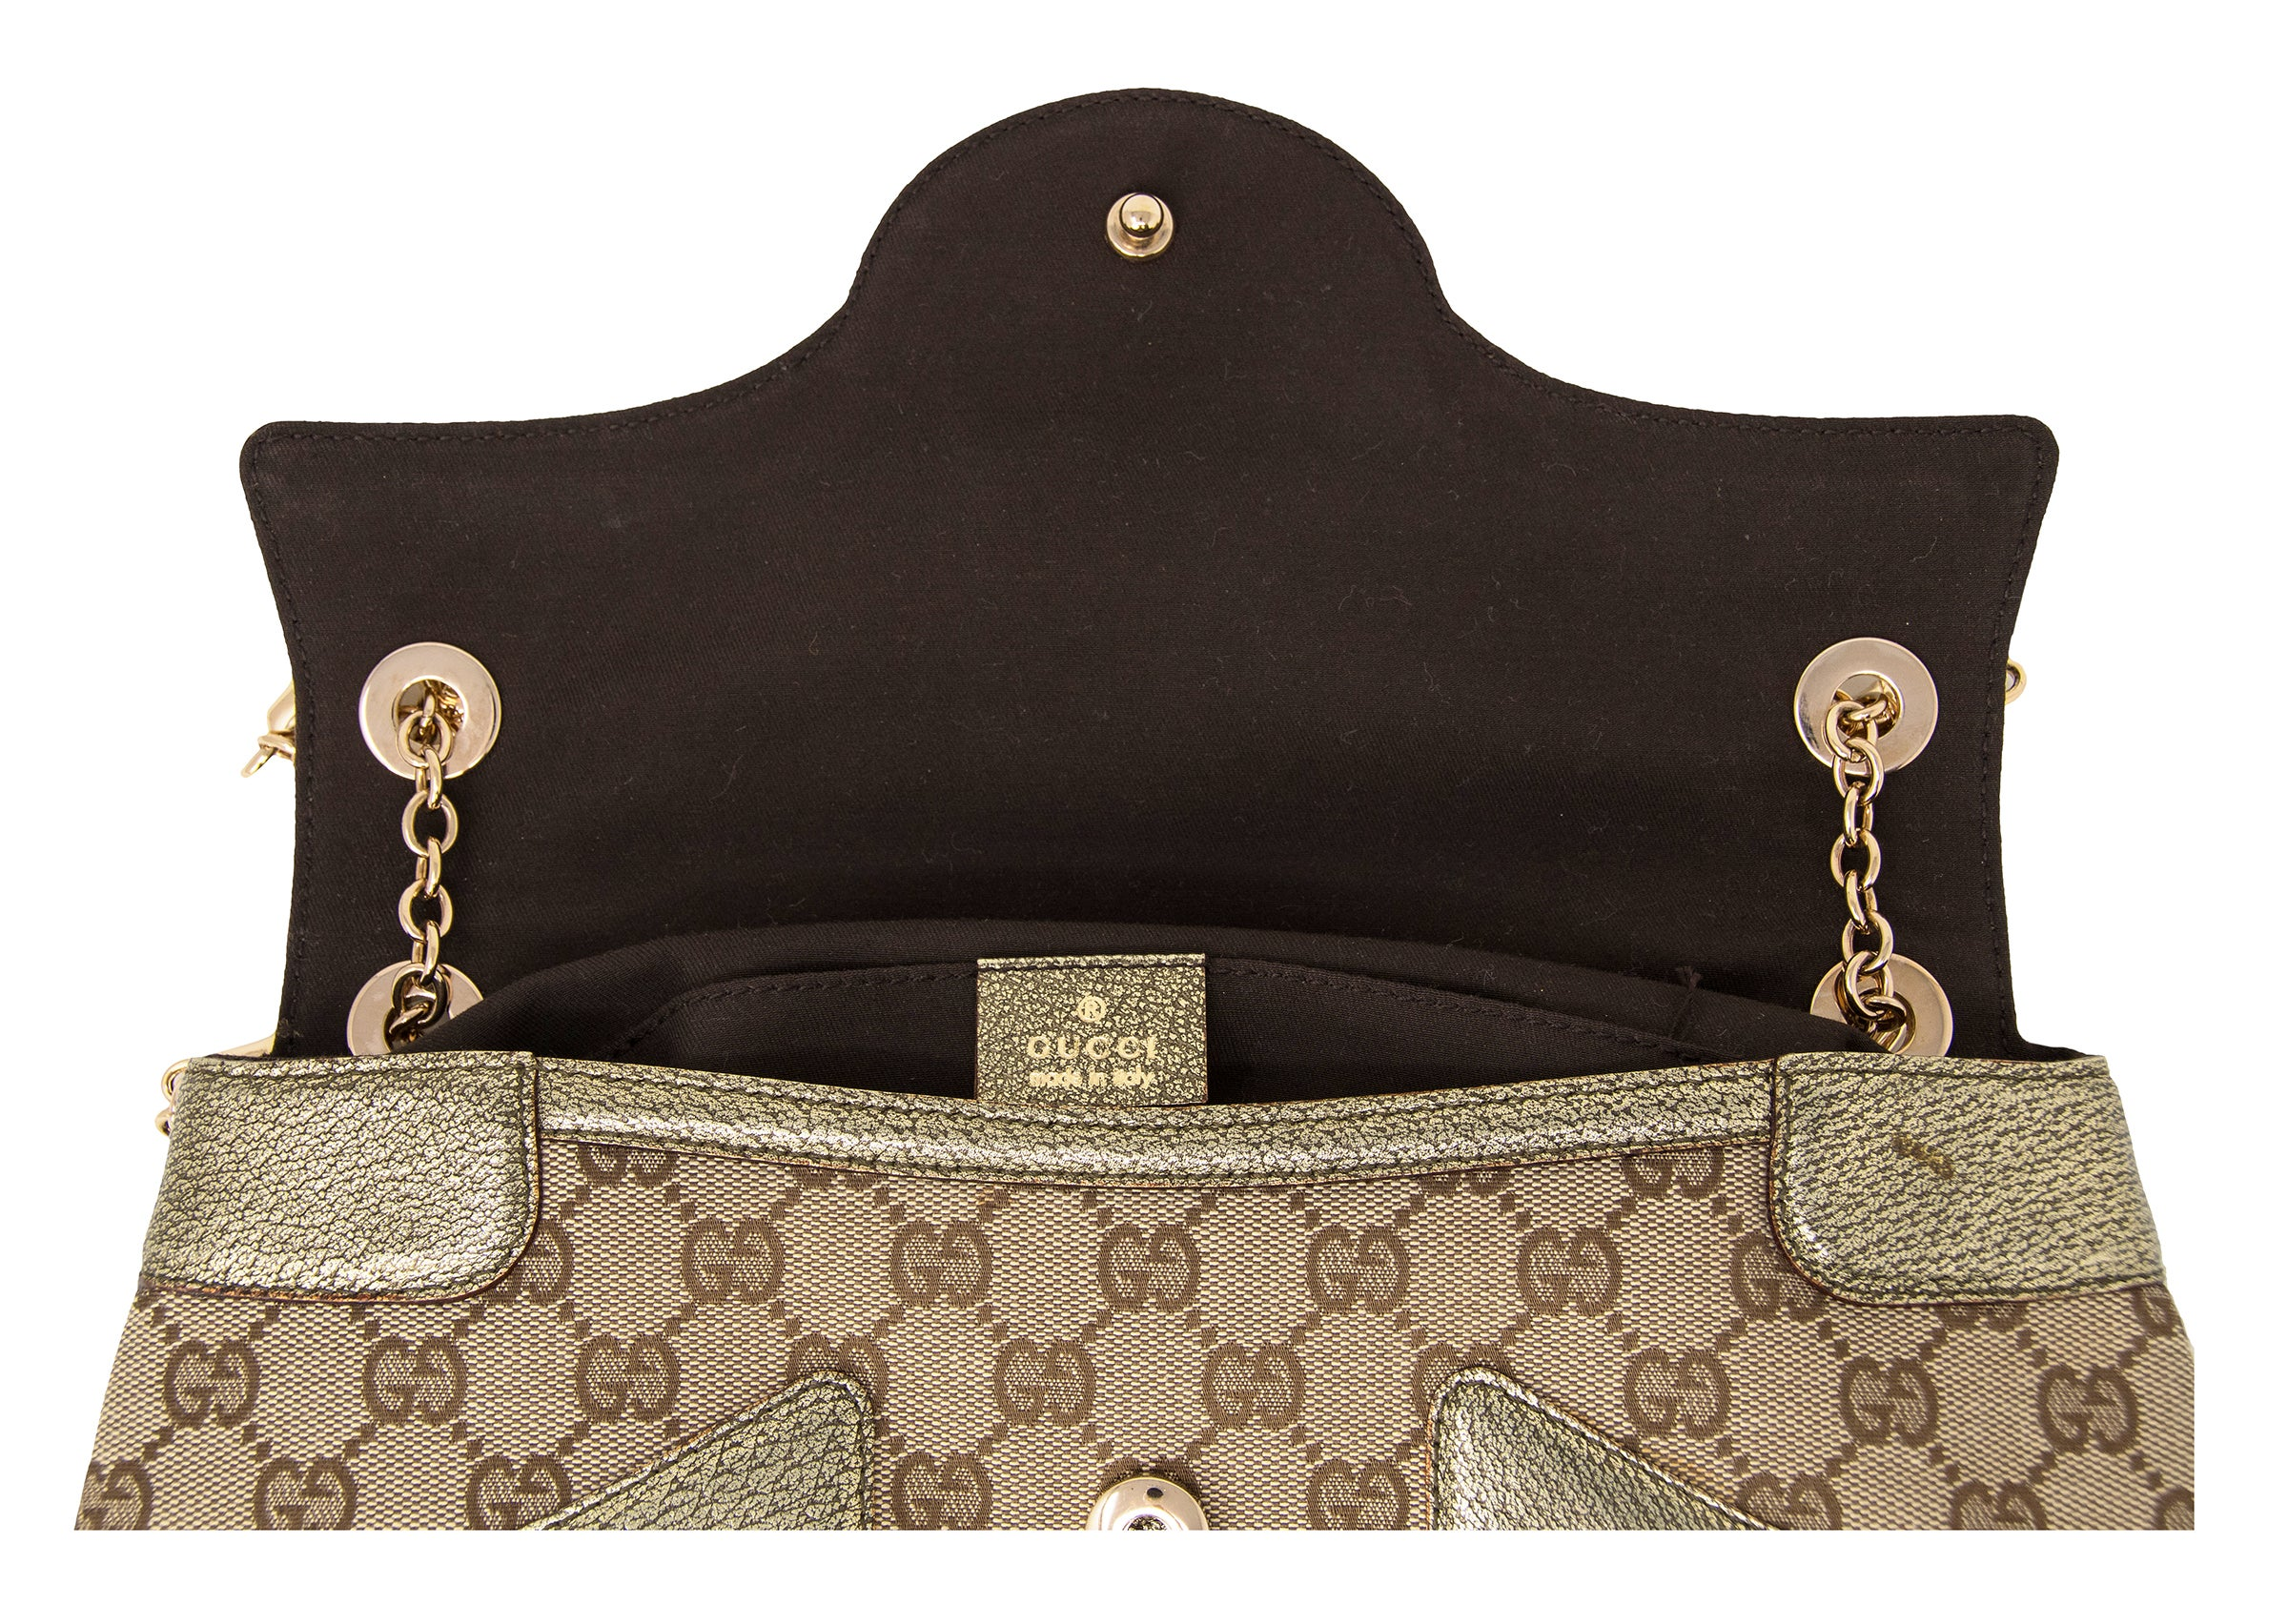 18cdc2831d0 Gucci by Tom Ford Jeweled Dragon Shoulder Bag at 1stdibs